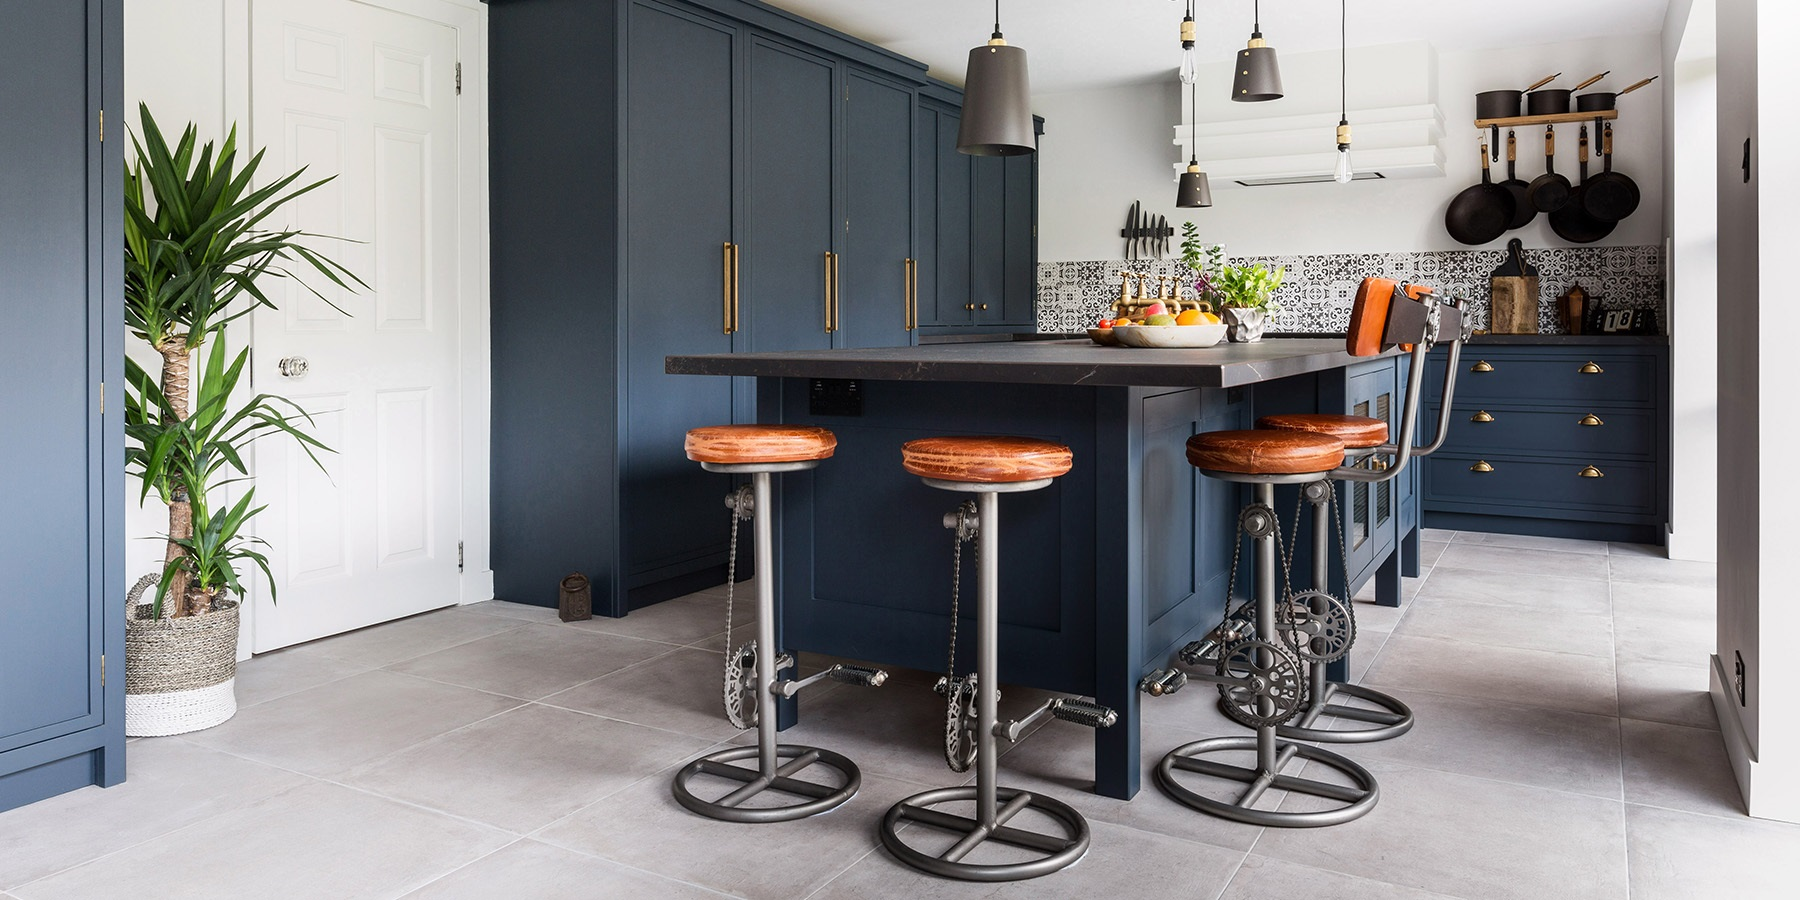 Industrial Style Handmade Kitchen - Burlanes handmade Decolane kitchen with freestanding central kitchen island.